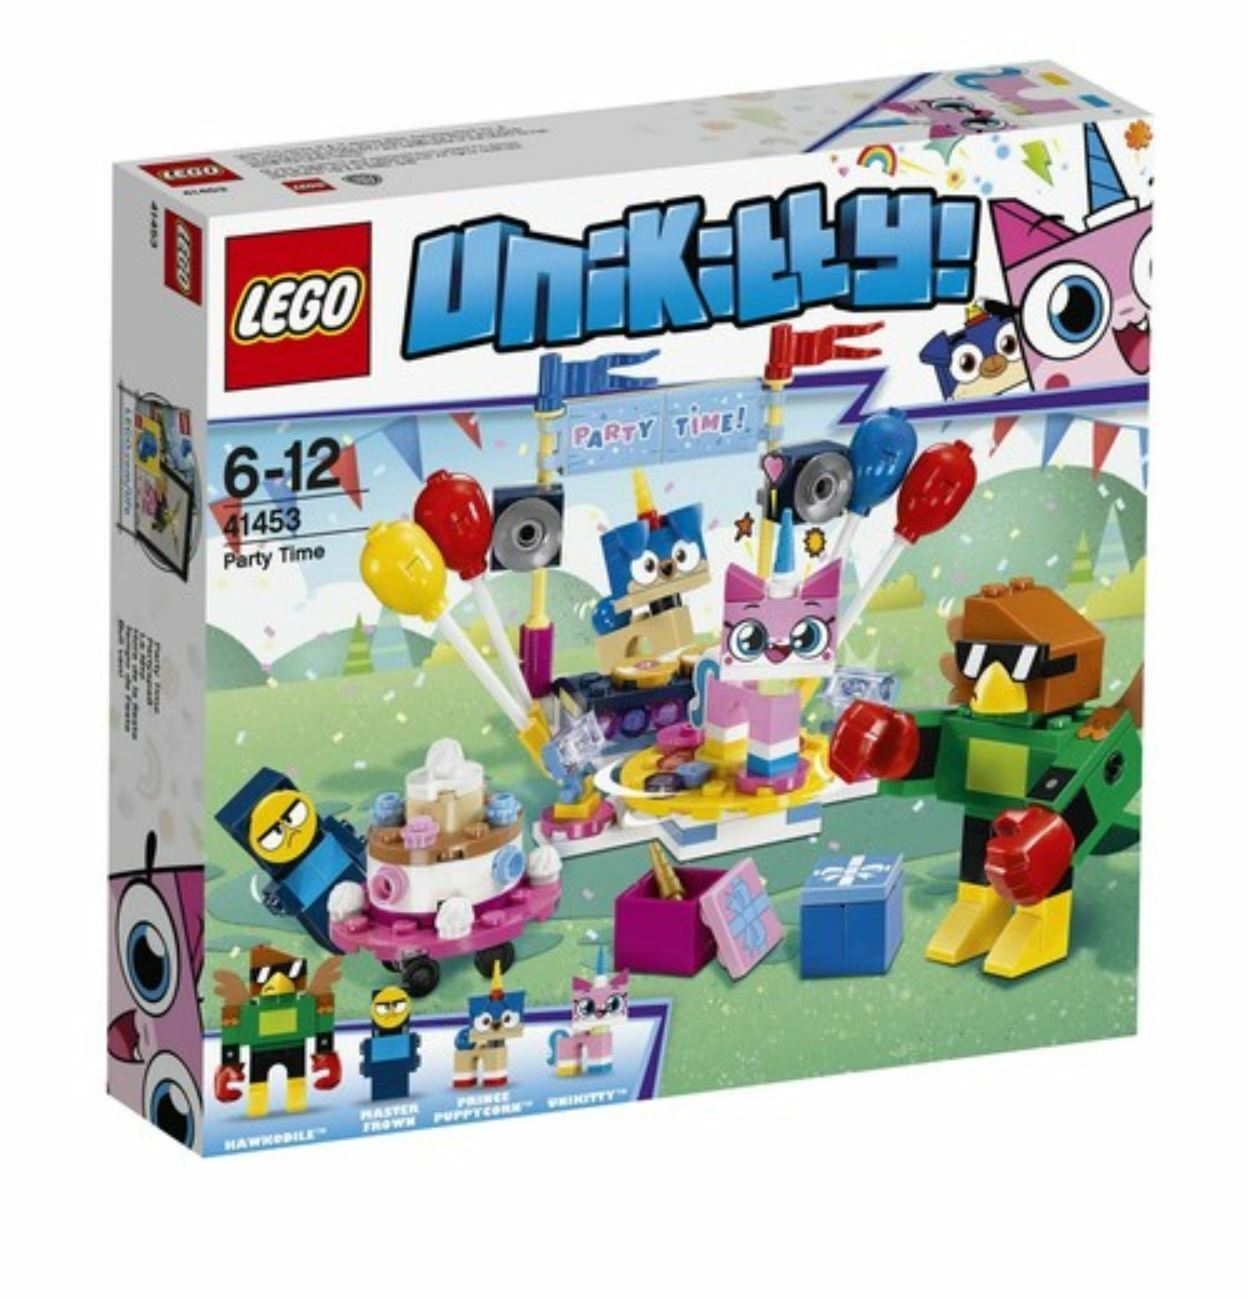 il più alla moda [LEGO] Unikitty™ Party Time 41453 2018 Version gratuito Shipping Shipping Shipping  acquista marca